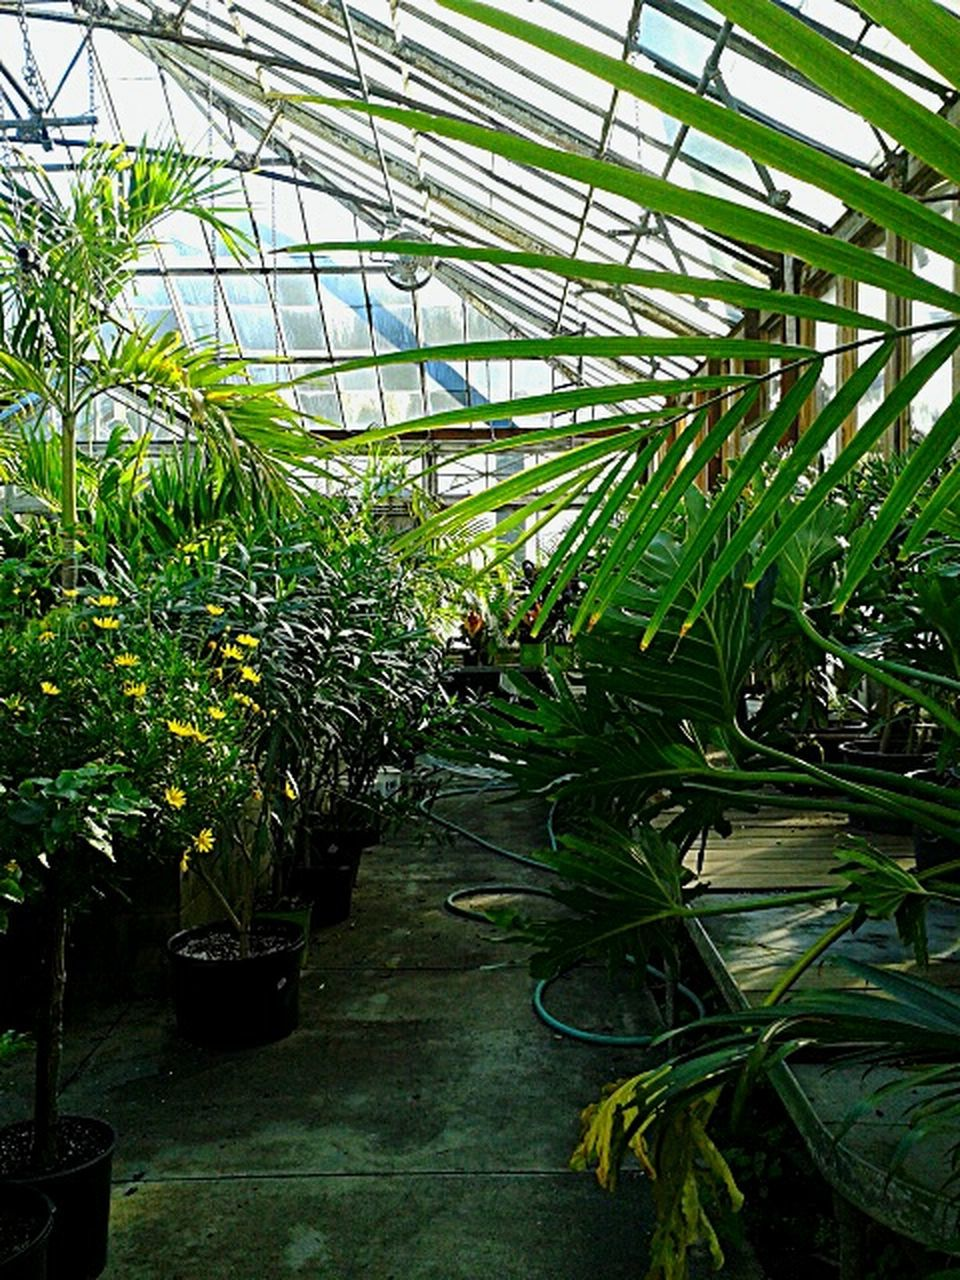 growth, plant, greenhouse, plant nursery, nature, botany, potted plant, green color, leaf, agriculture, indoors, grass, no people, day, architecture, beauty in nature, botanical garden